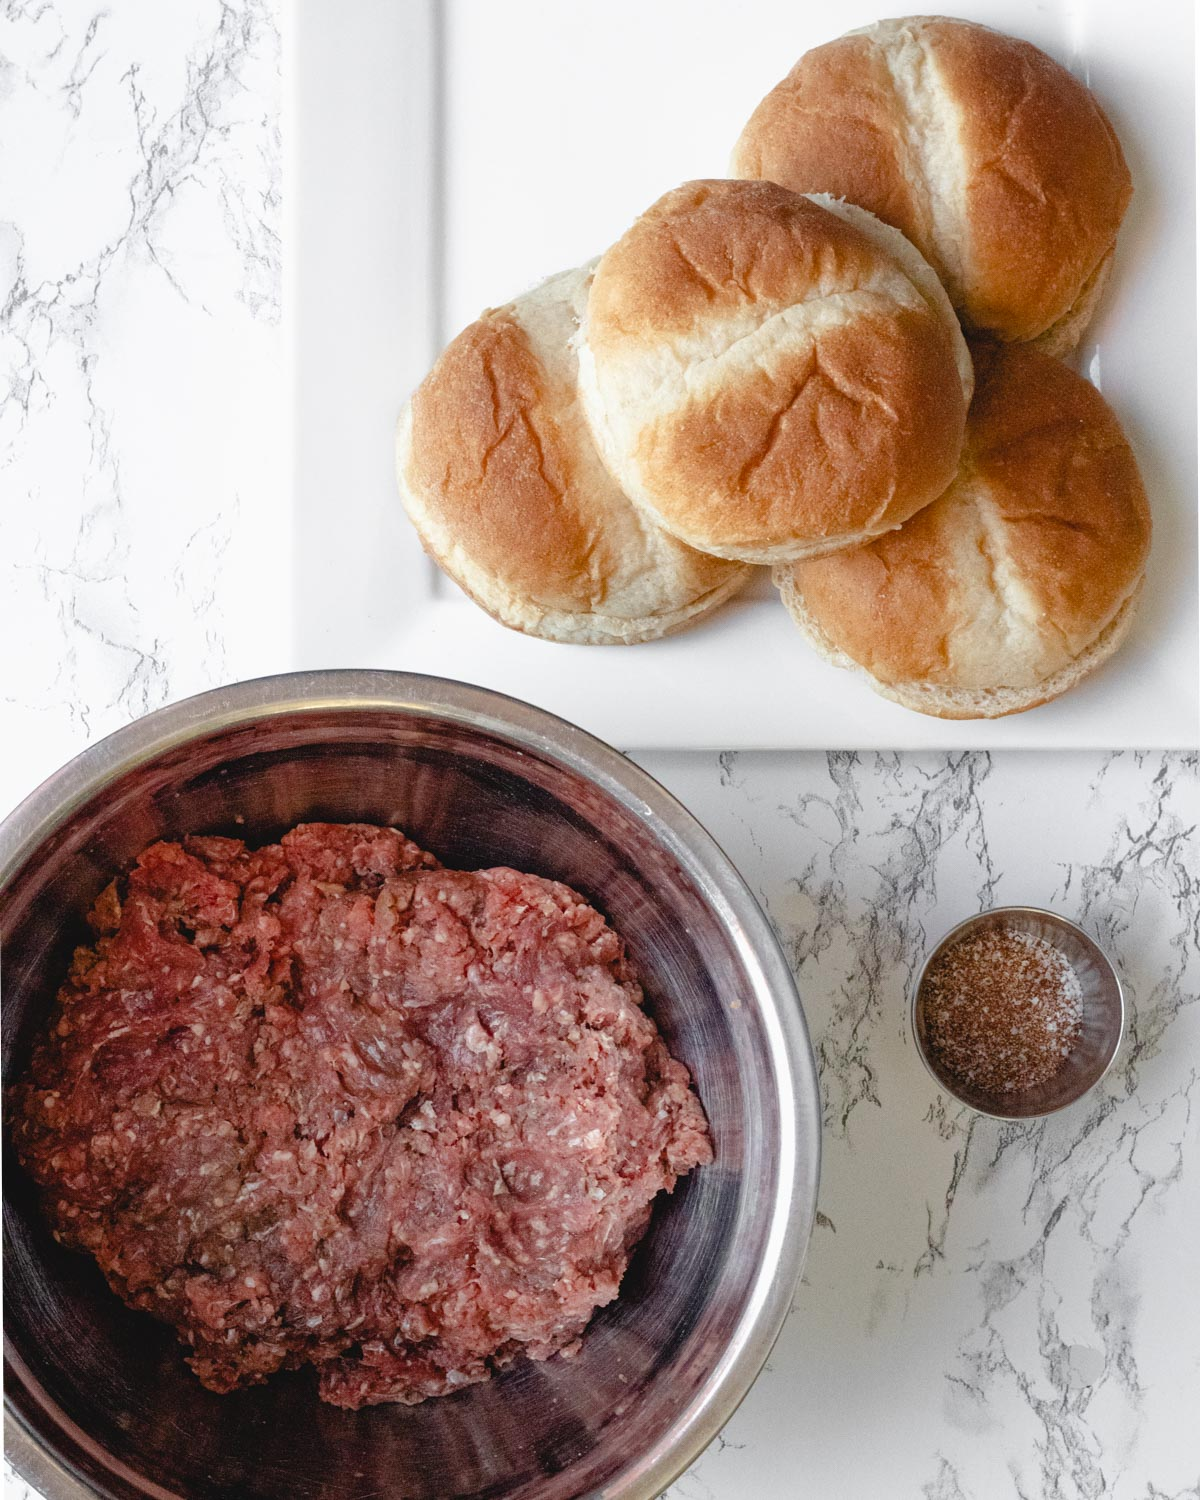 Bowl of ground meat with a ramekkin of seasoning and a plate with 4 buns.